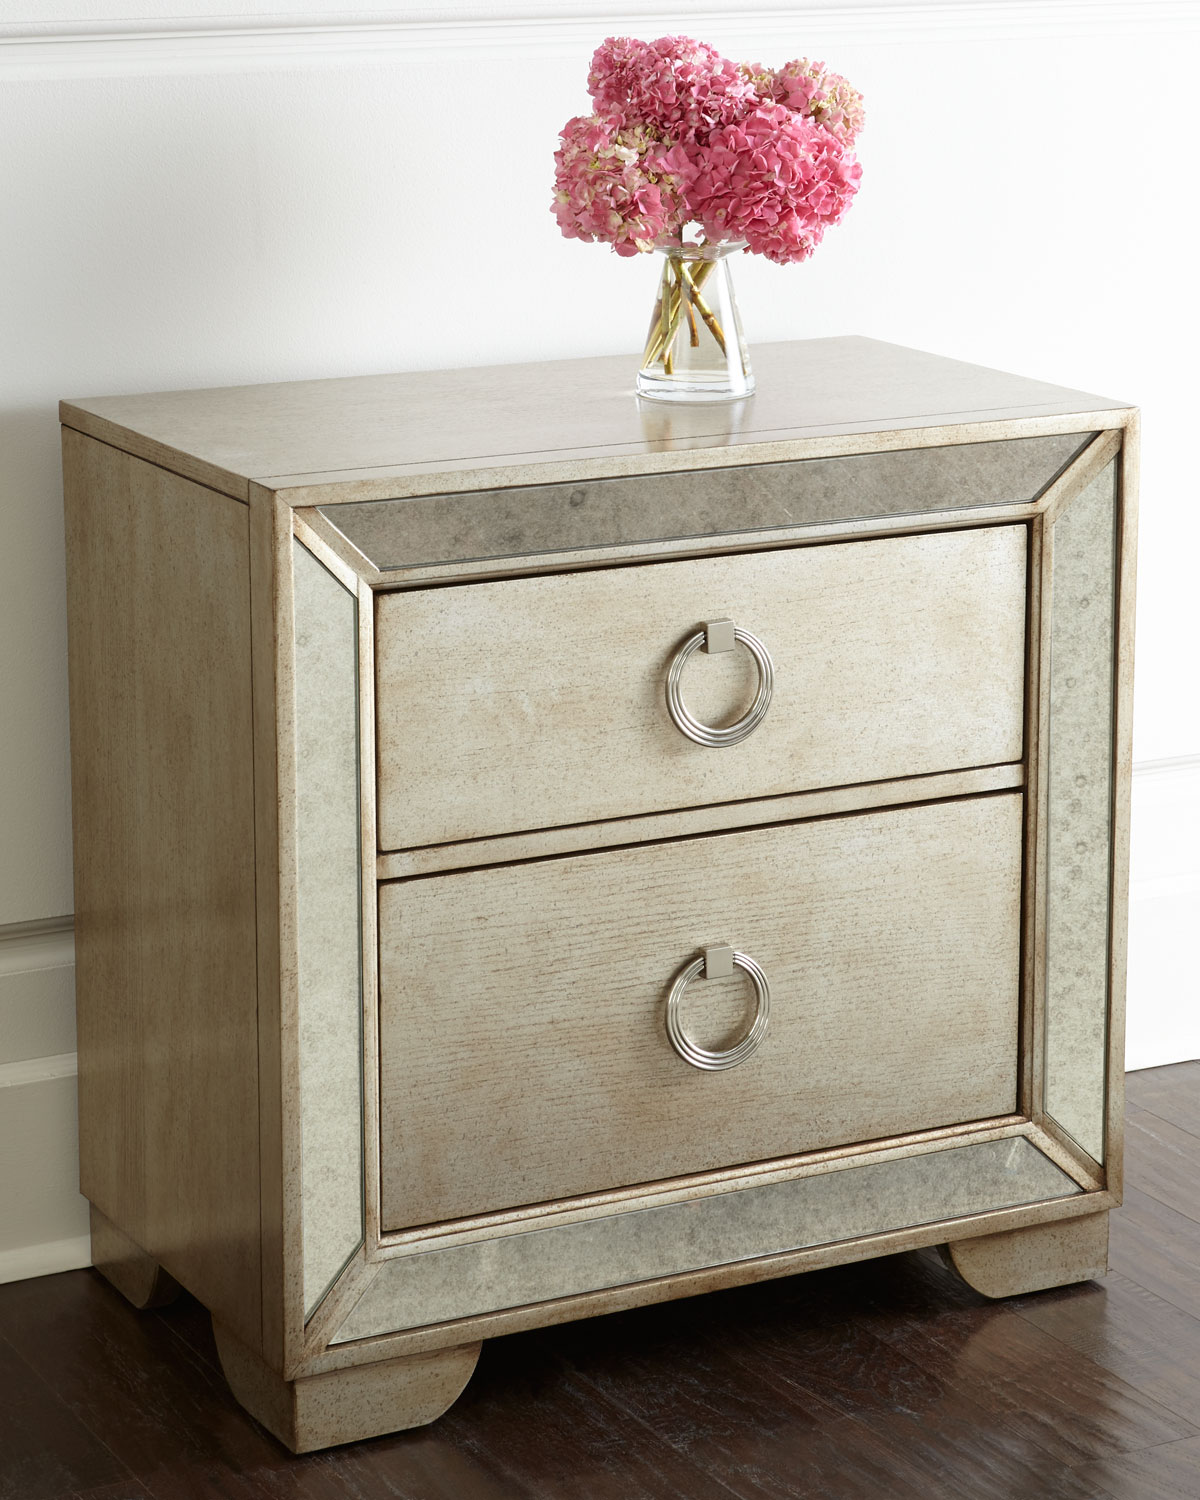 Lombard Nightstand, Beige/Mirrored